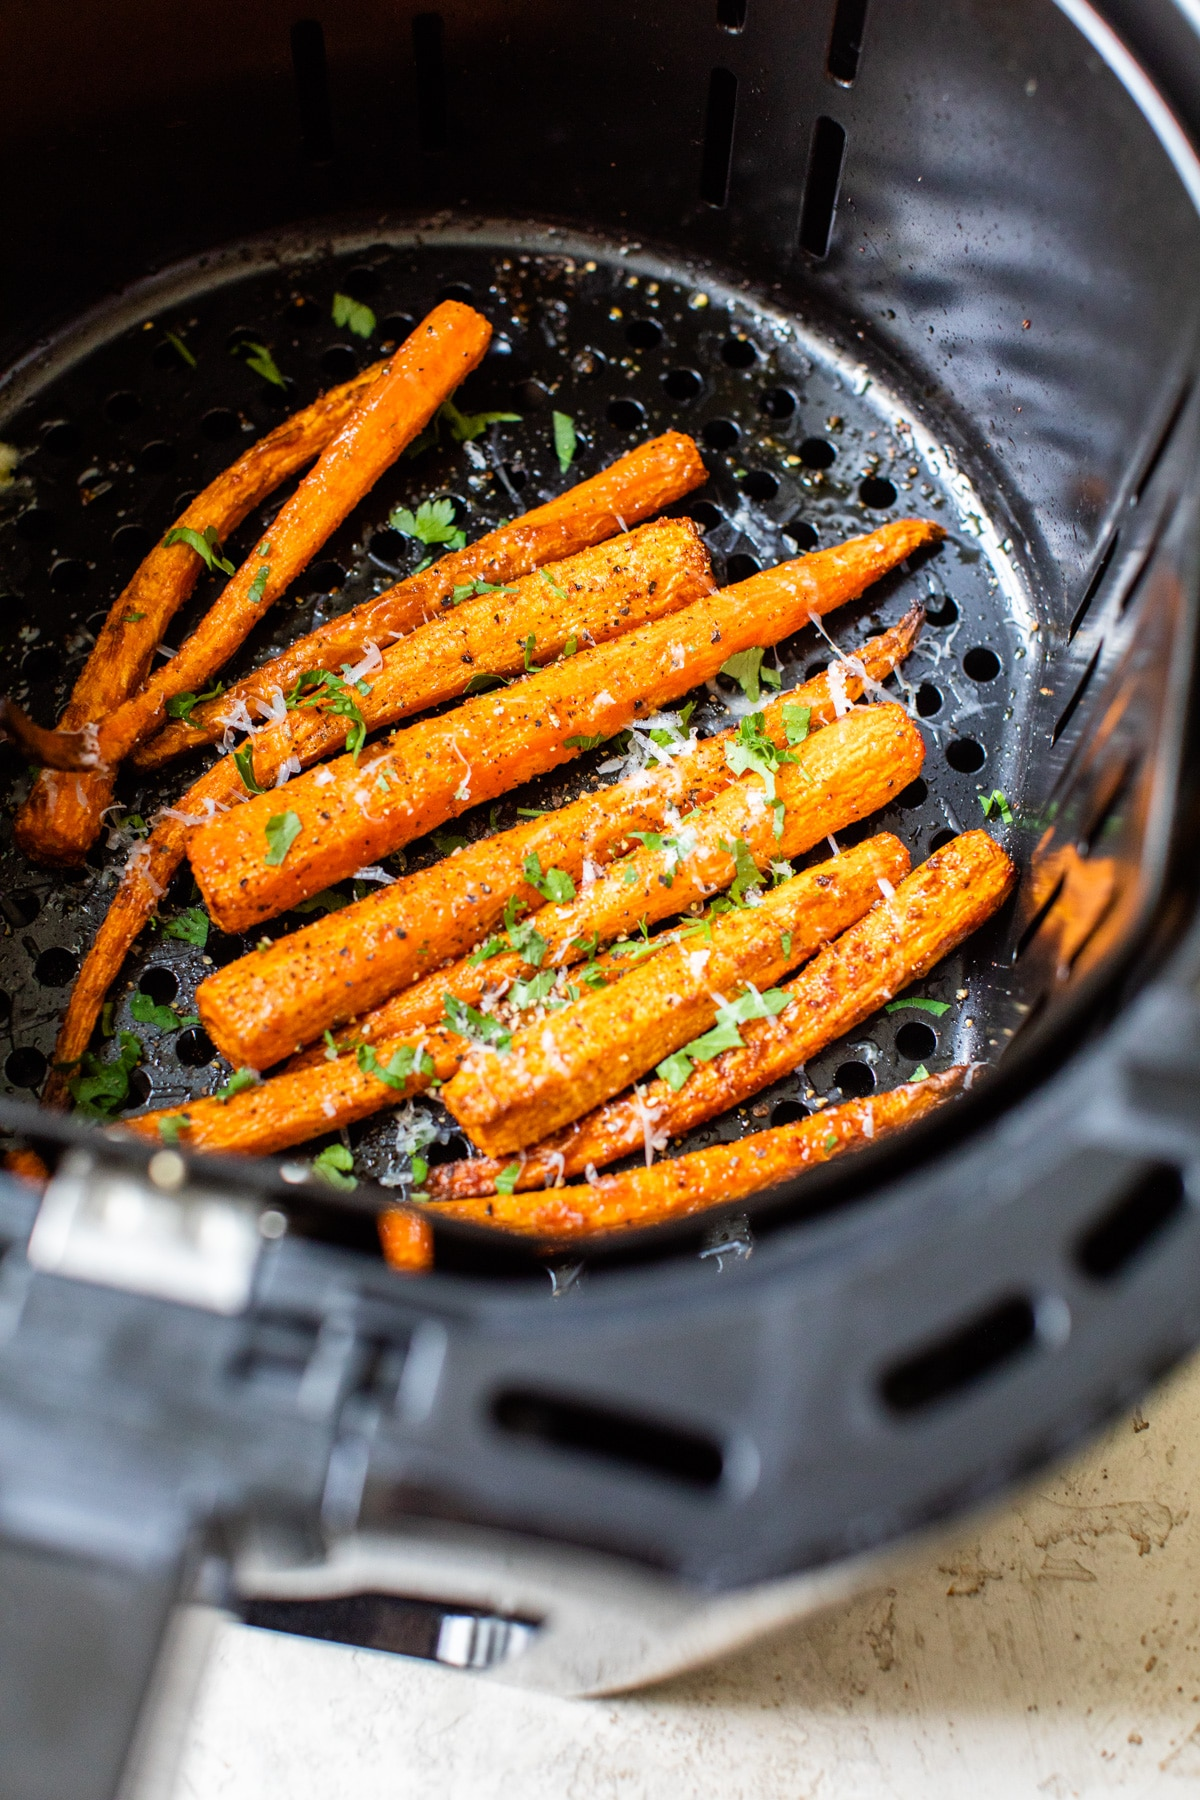 carrots in an air fryer